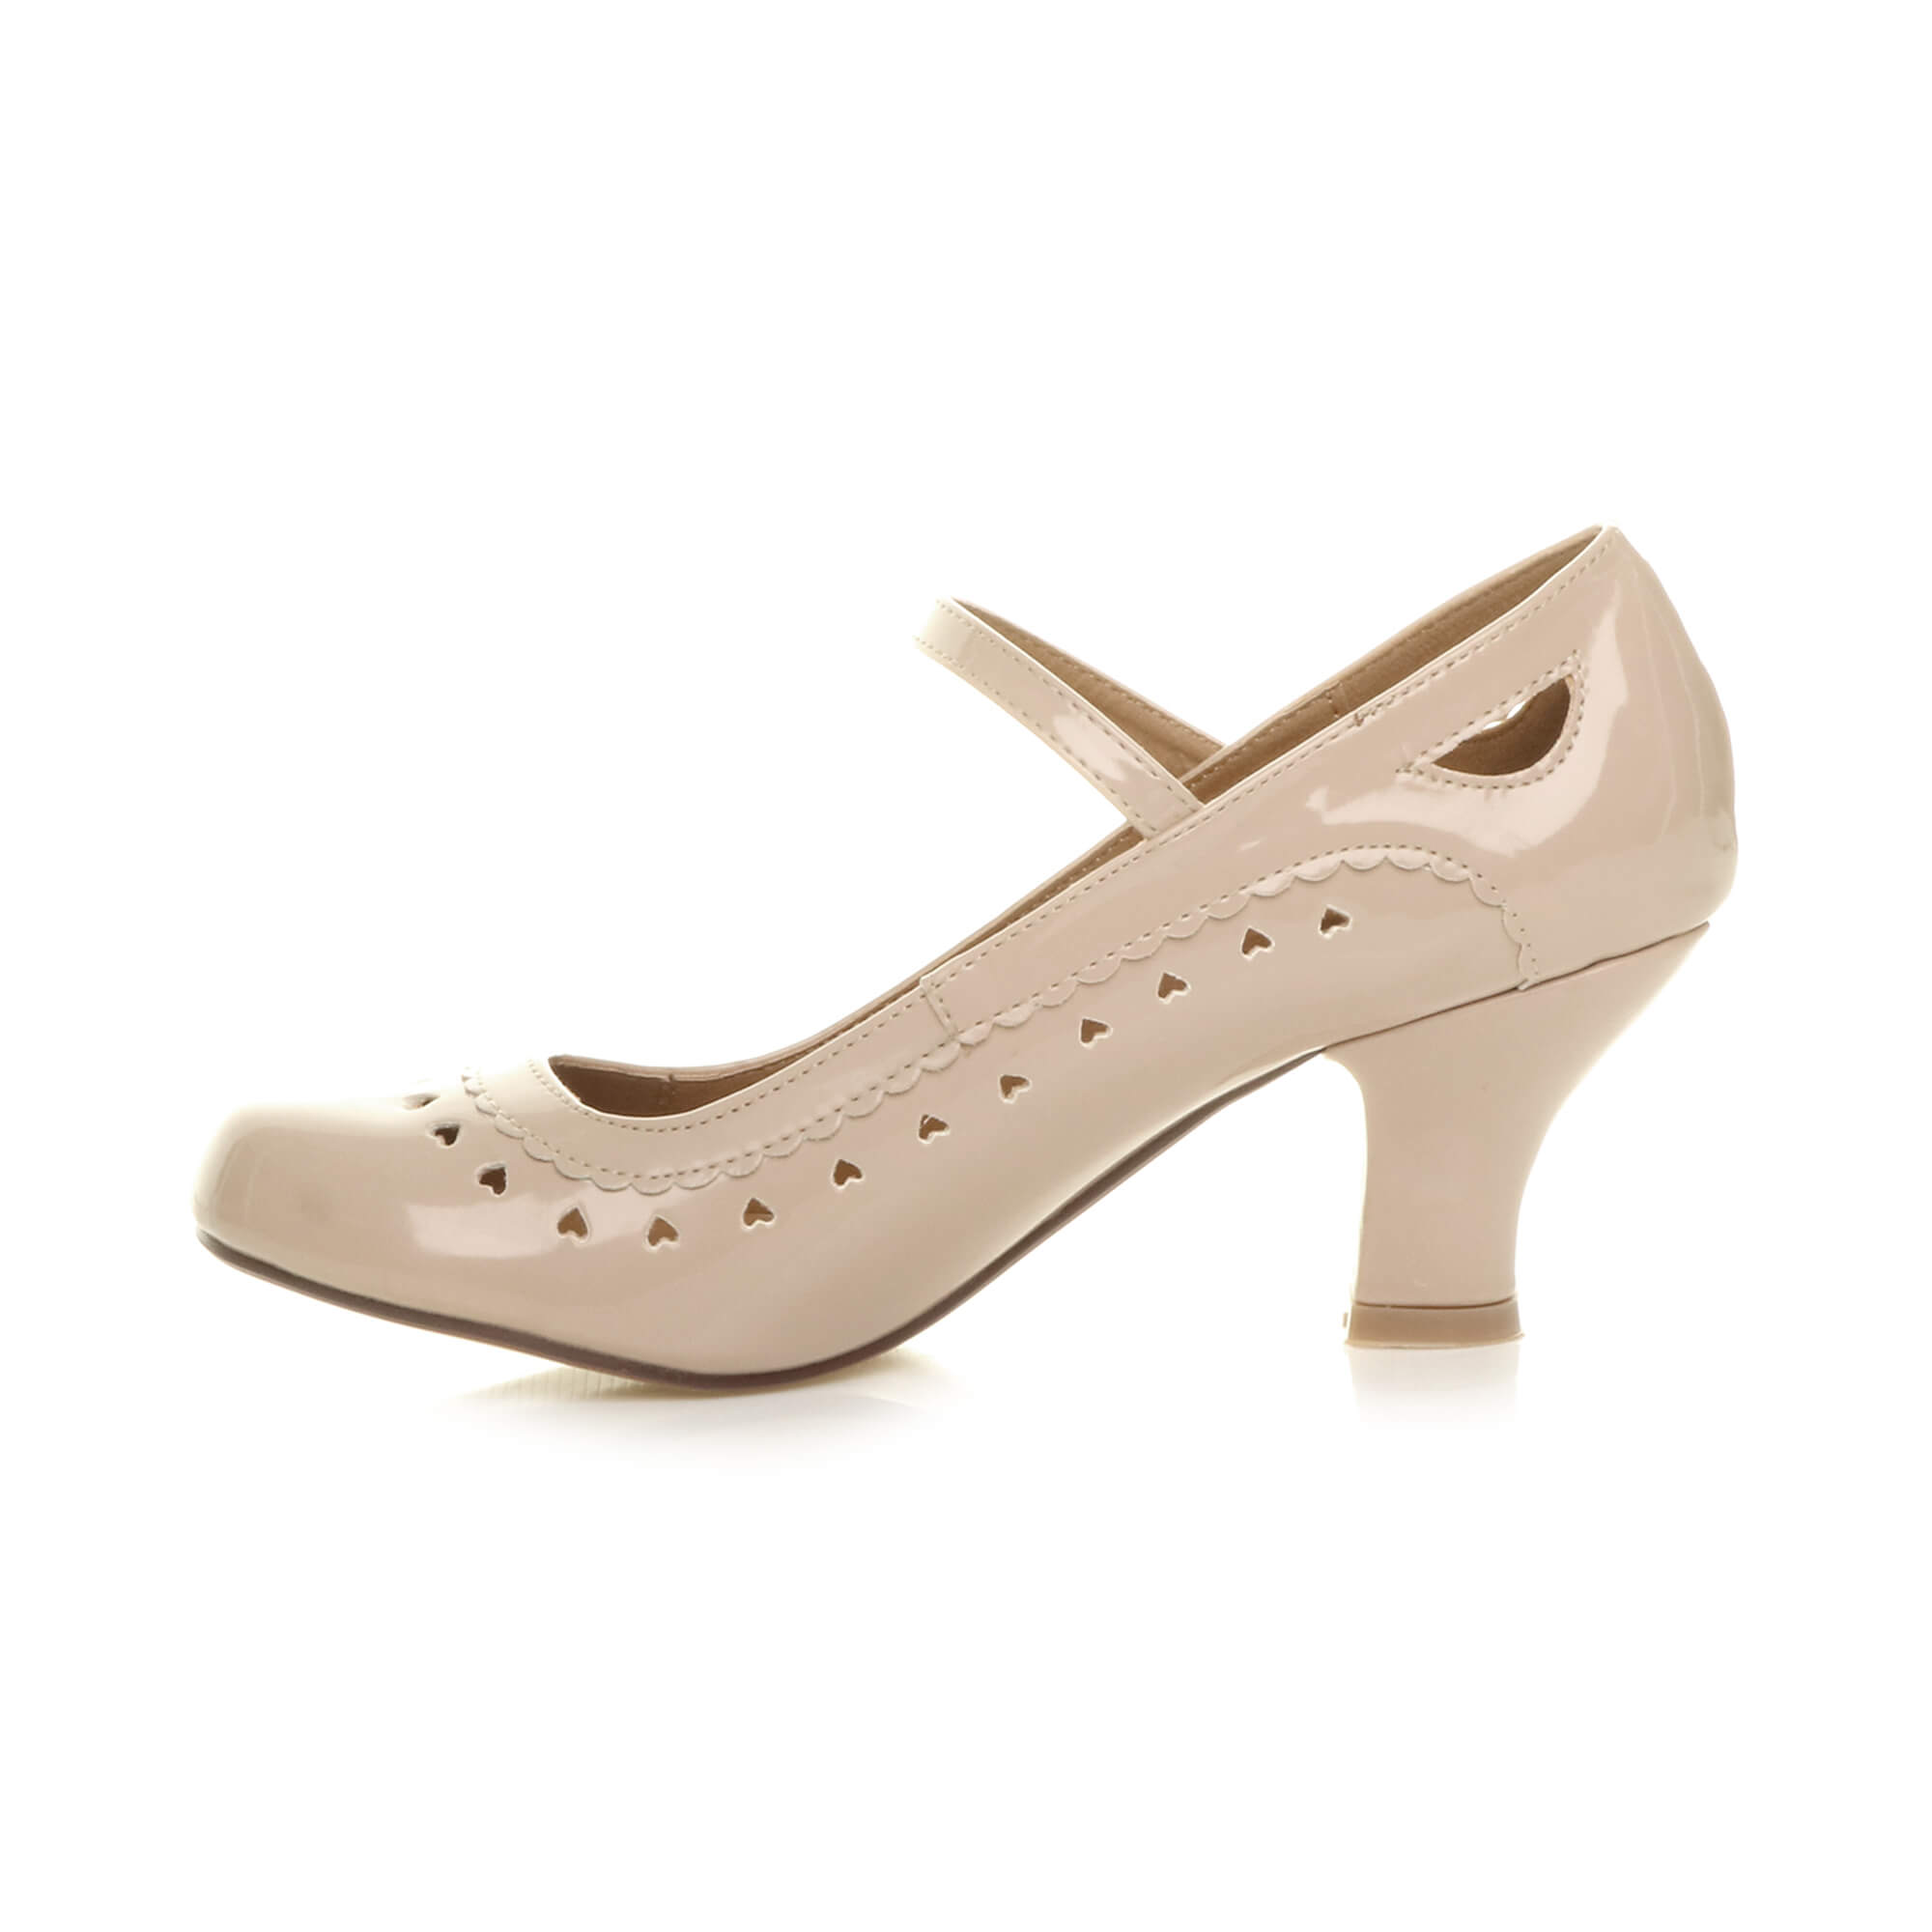 WOMENS-LADIES-MID-HEEL-MARY-JANE-CUT-OUT-HEART-50-039-S-60-039-S-COURT-SHOES-PUMPS-SIZE